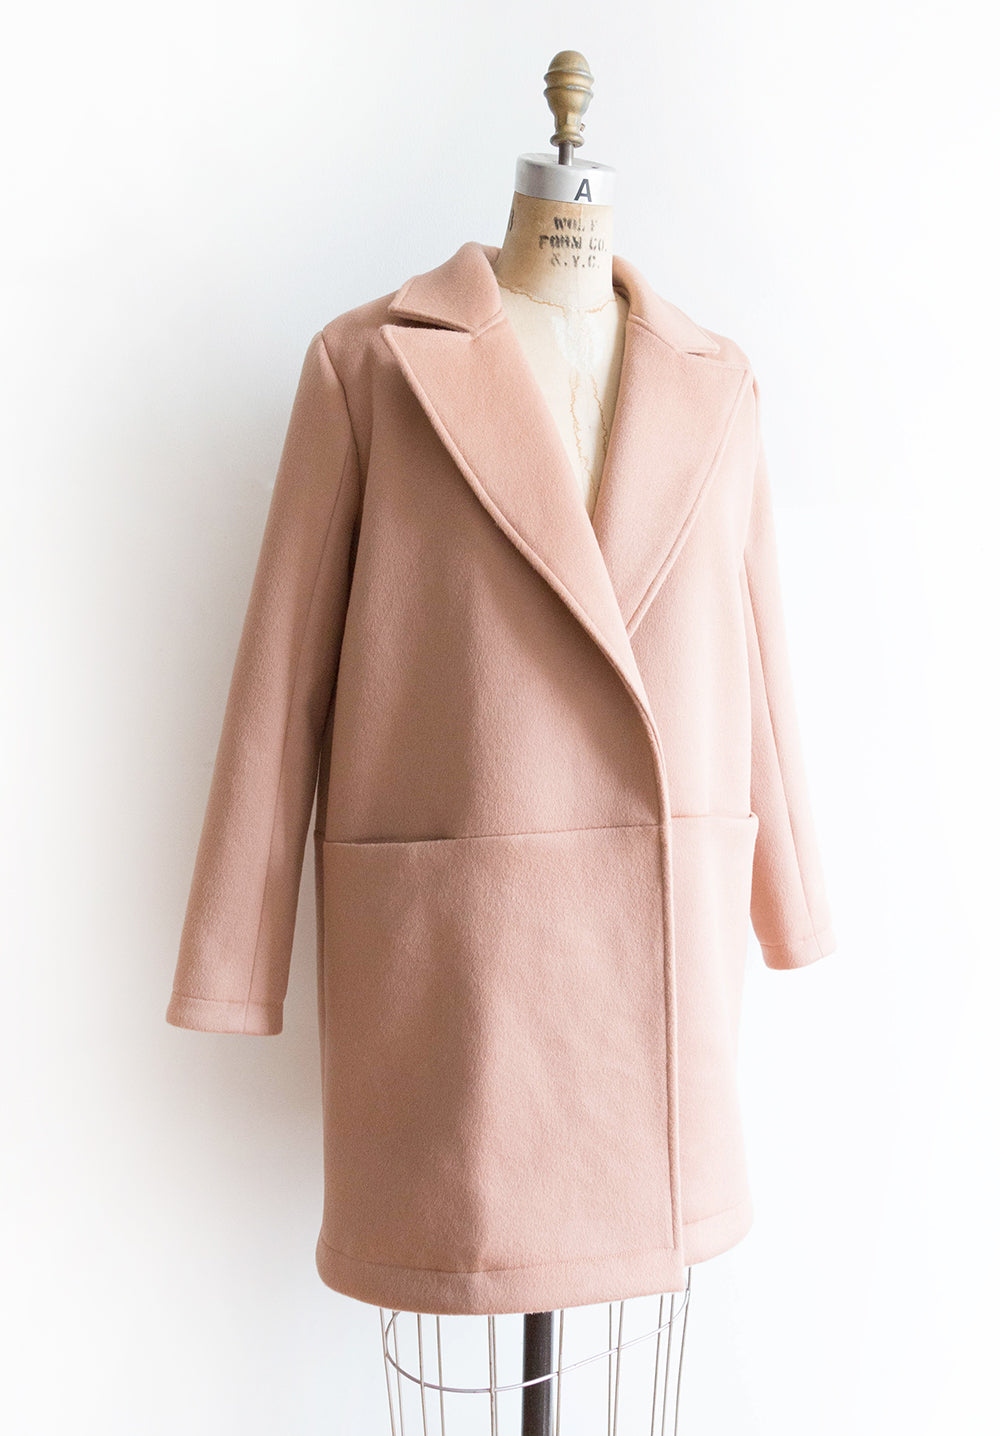 Yates Sew-Along: Lining your Coat | Grainline Studio